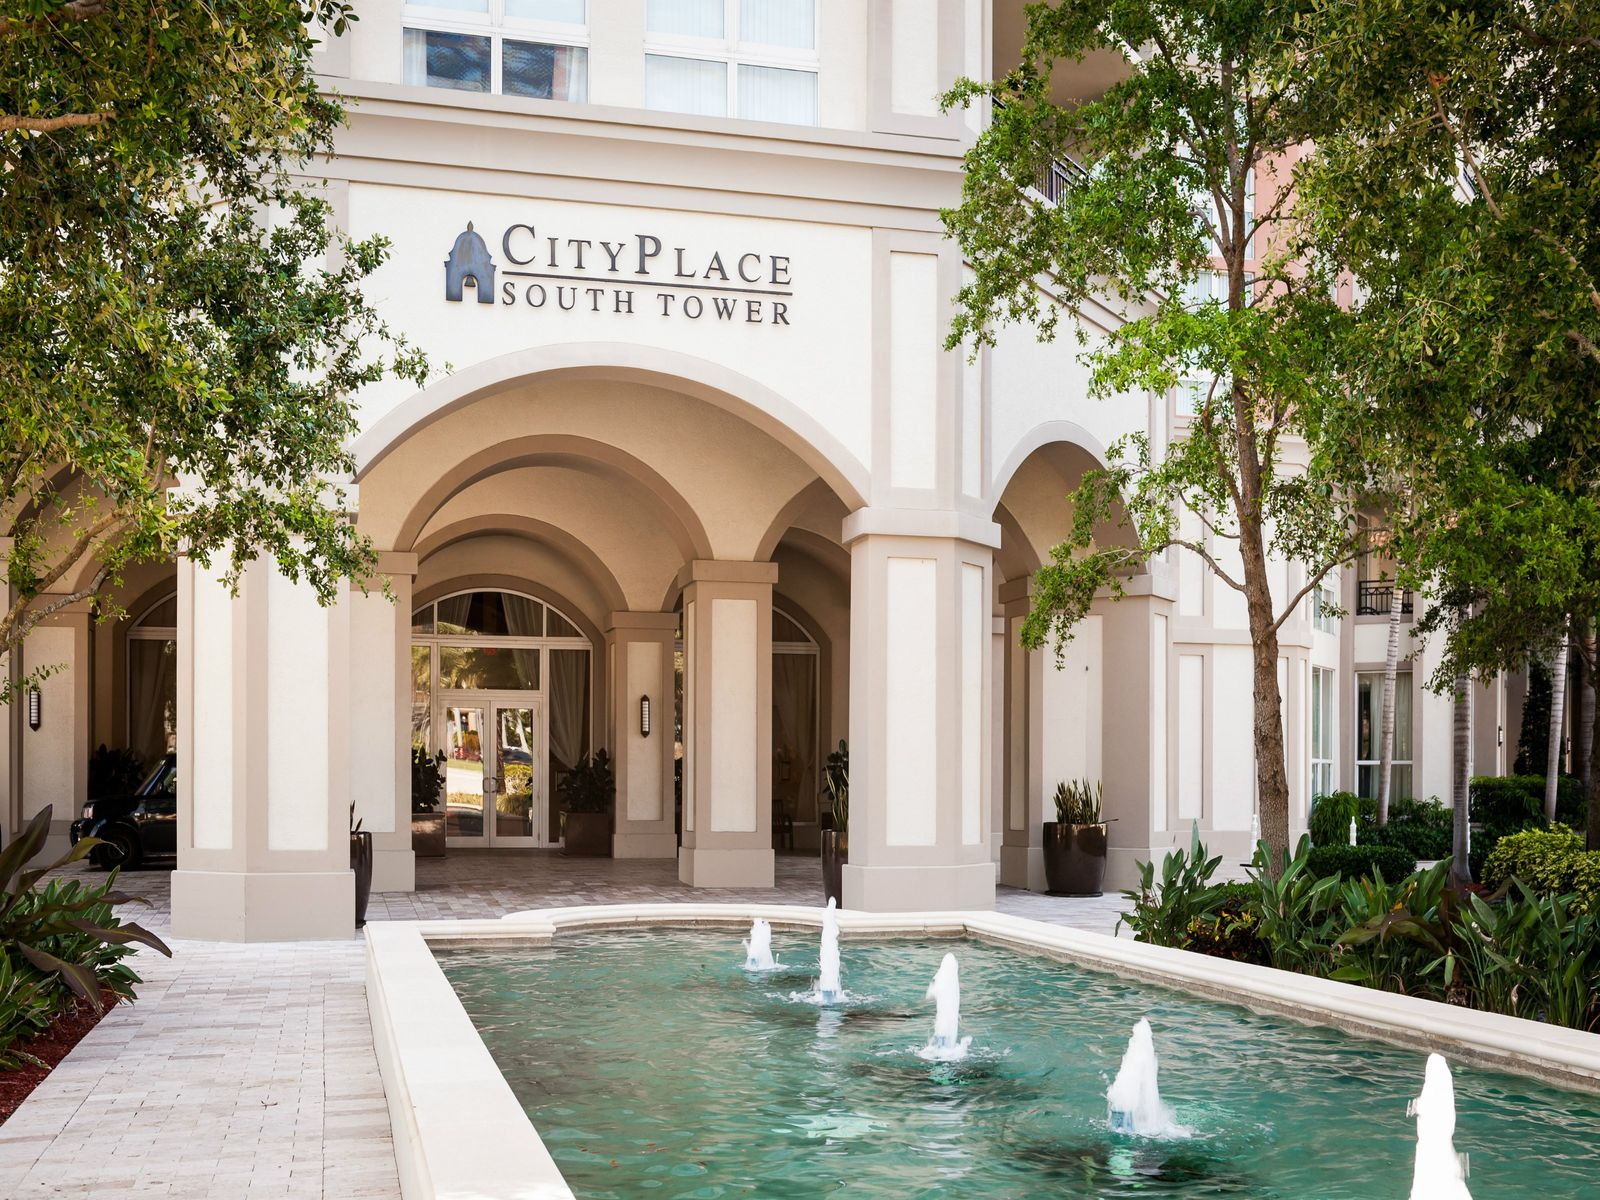 City Place South Tower